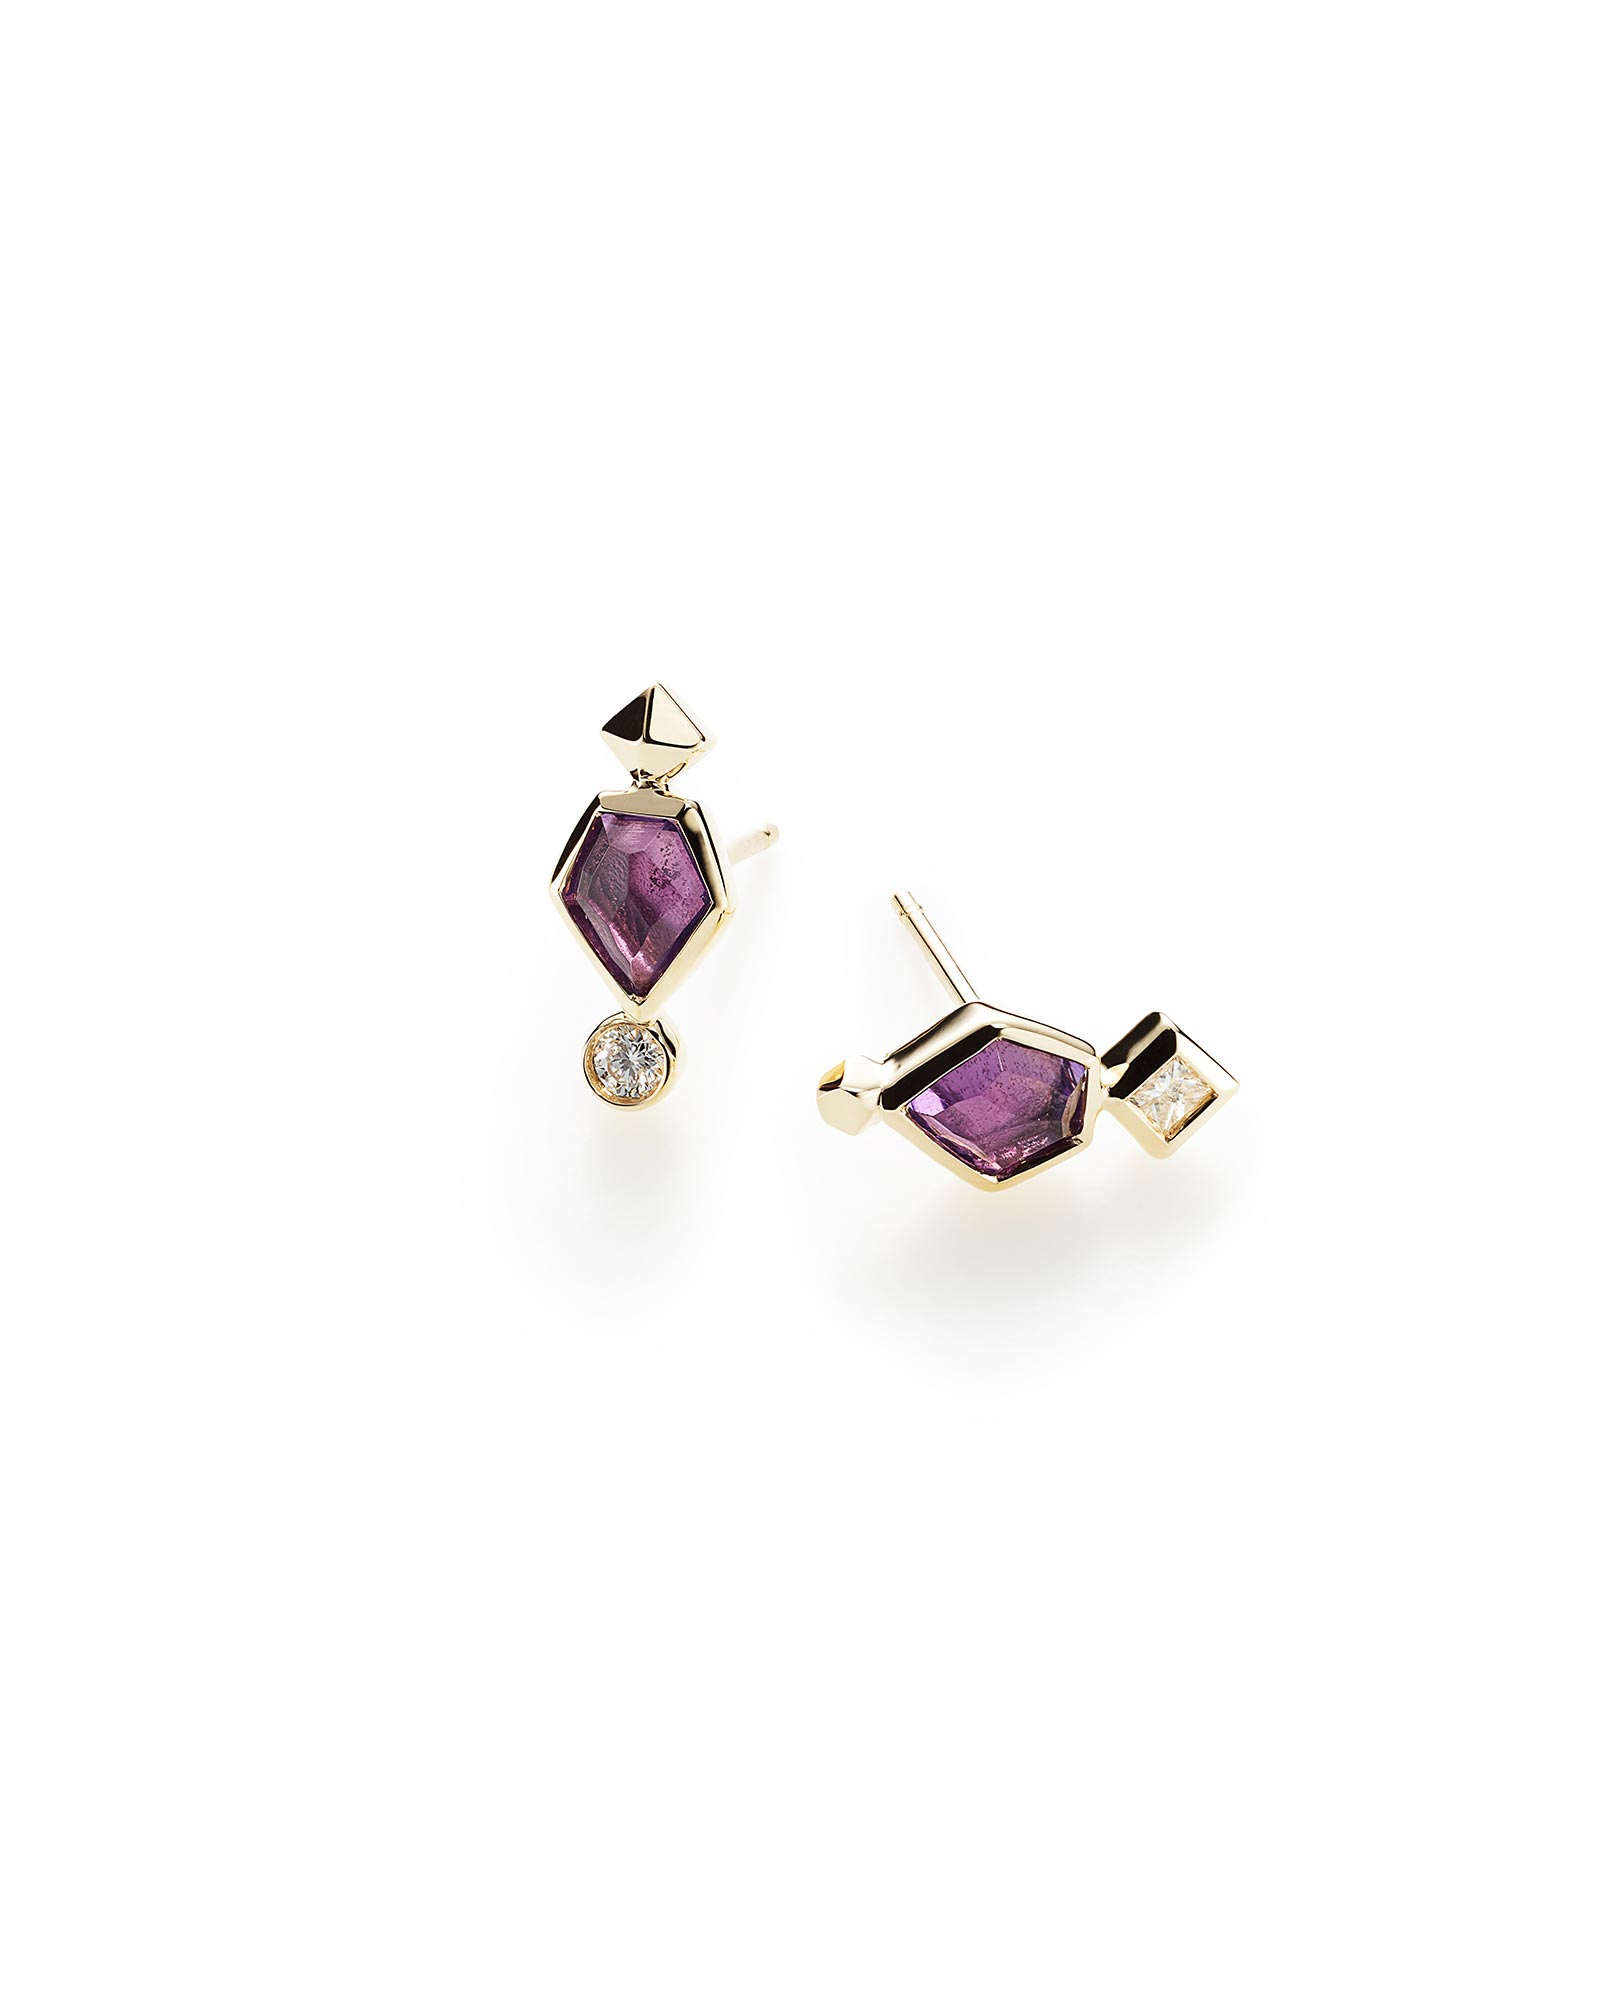 Bonnie Stud Earrings in 14k Gold